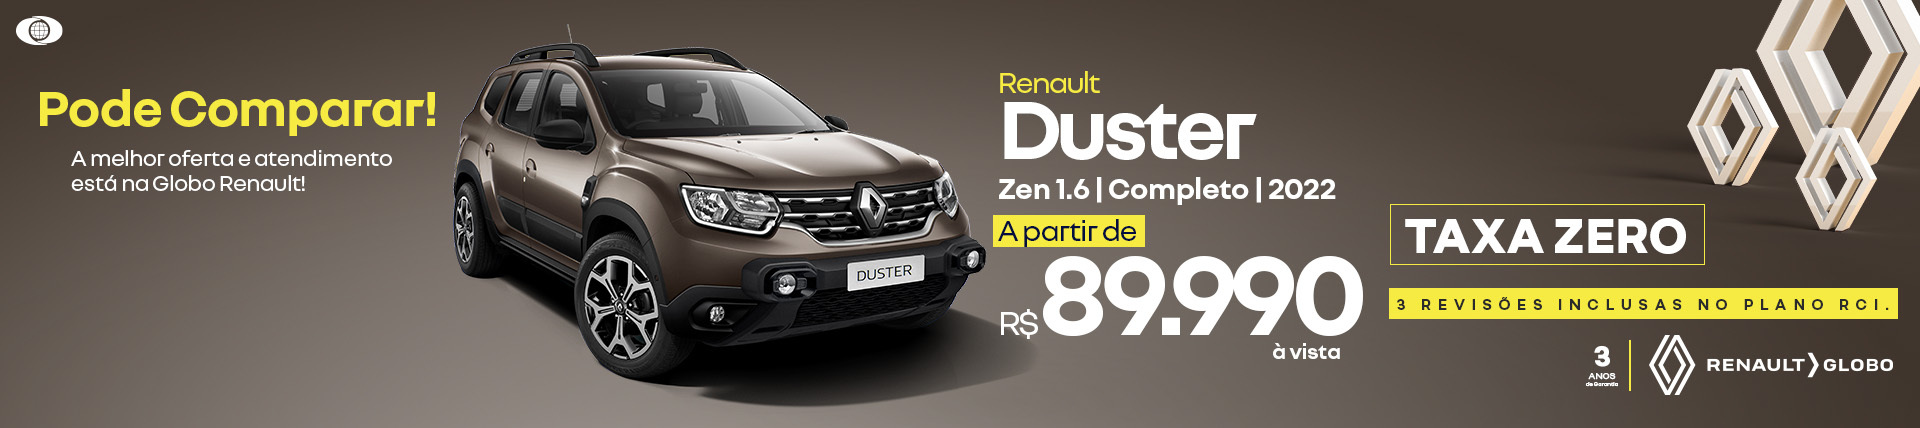 duster 0721